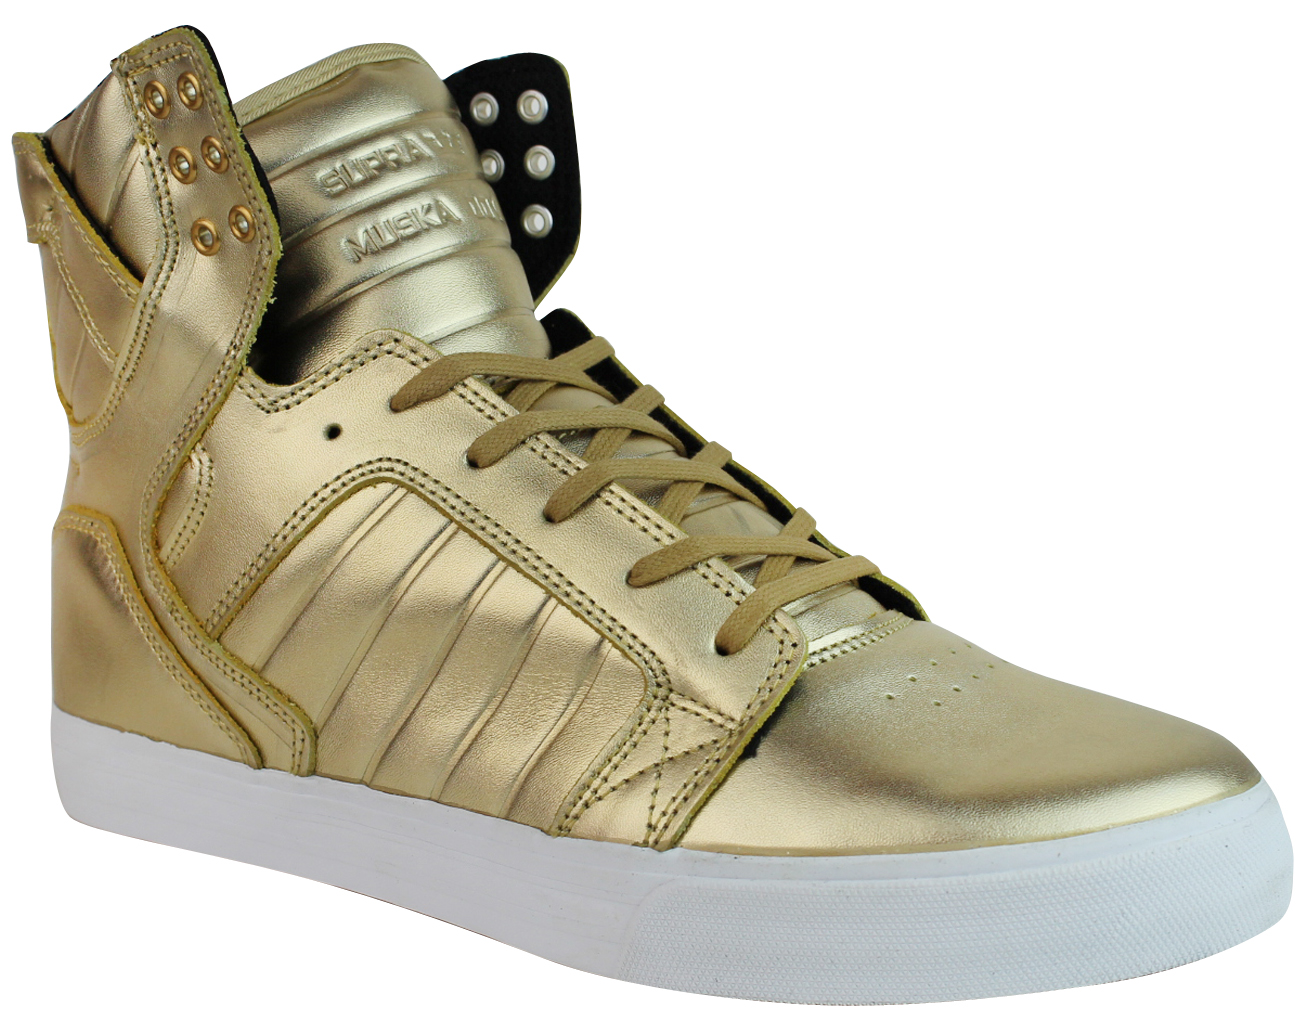 Vaider Men's Leather High Hi Top Fashion Sneakers Gold 08003-718-M